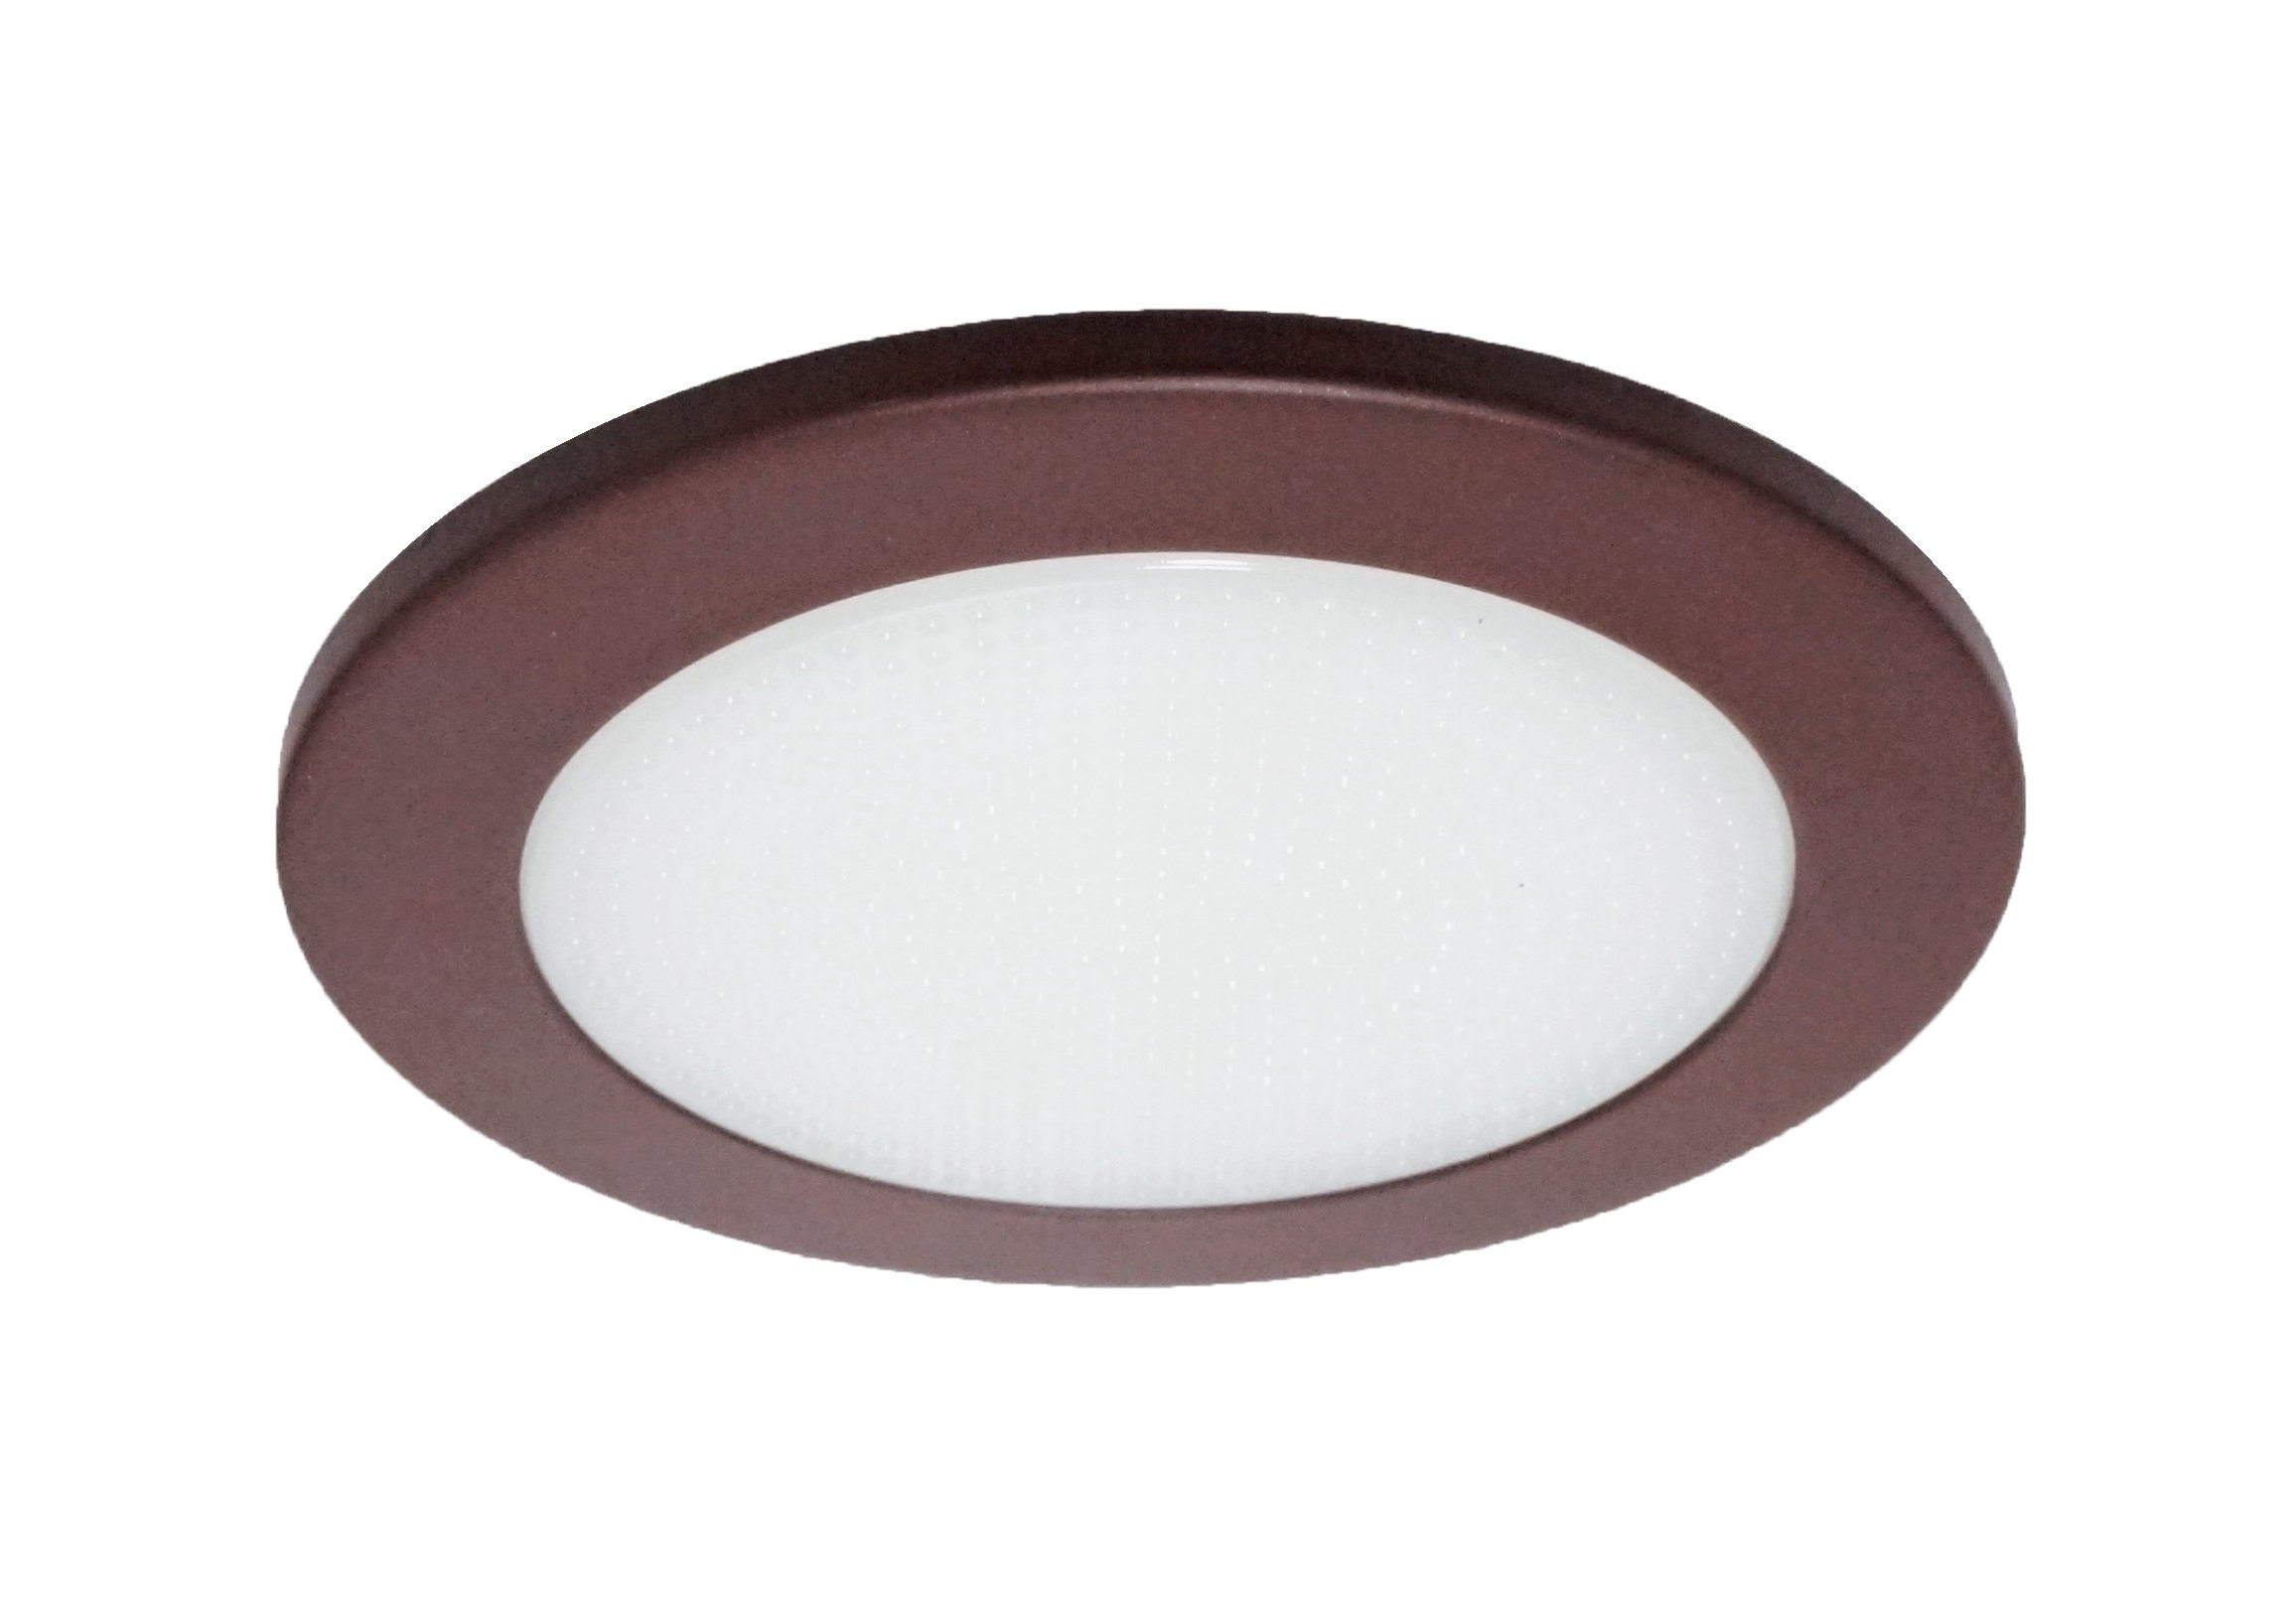 NICOR Lighting 4-inch Recessed Lighting Shower Trim with Albalite Lens, Oil-Rubbed Bronze (19509OB)